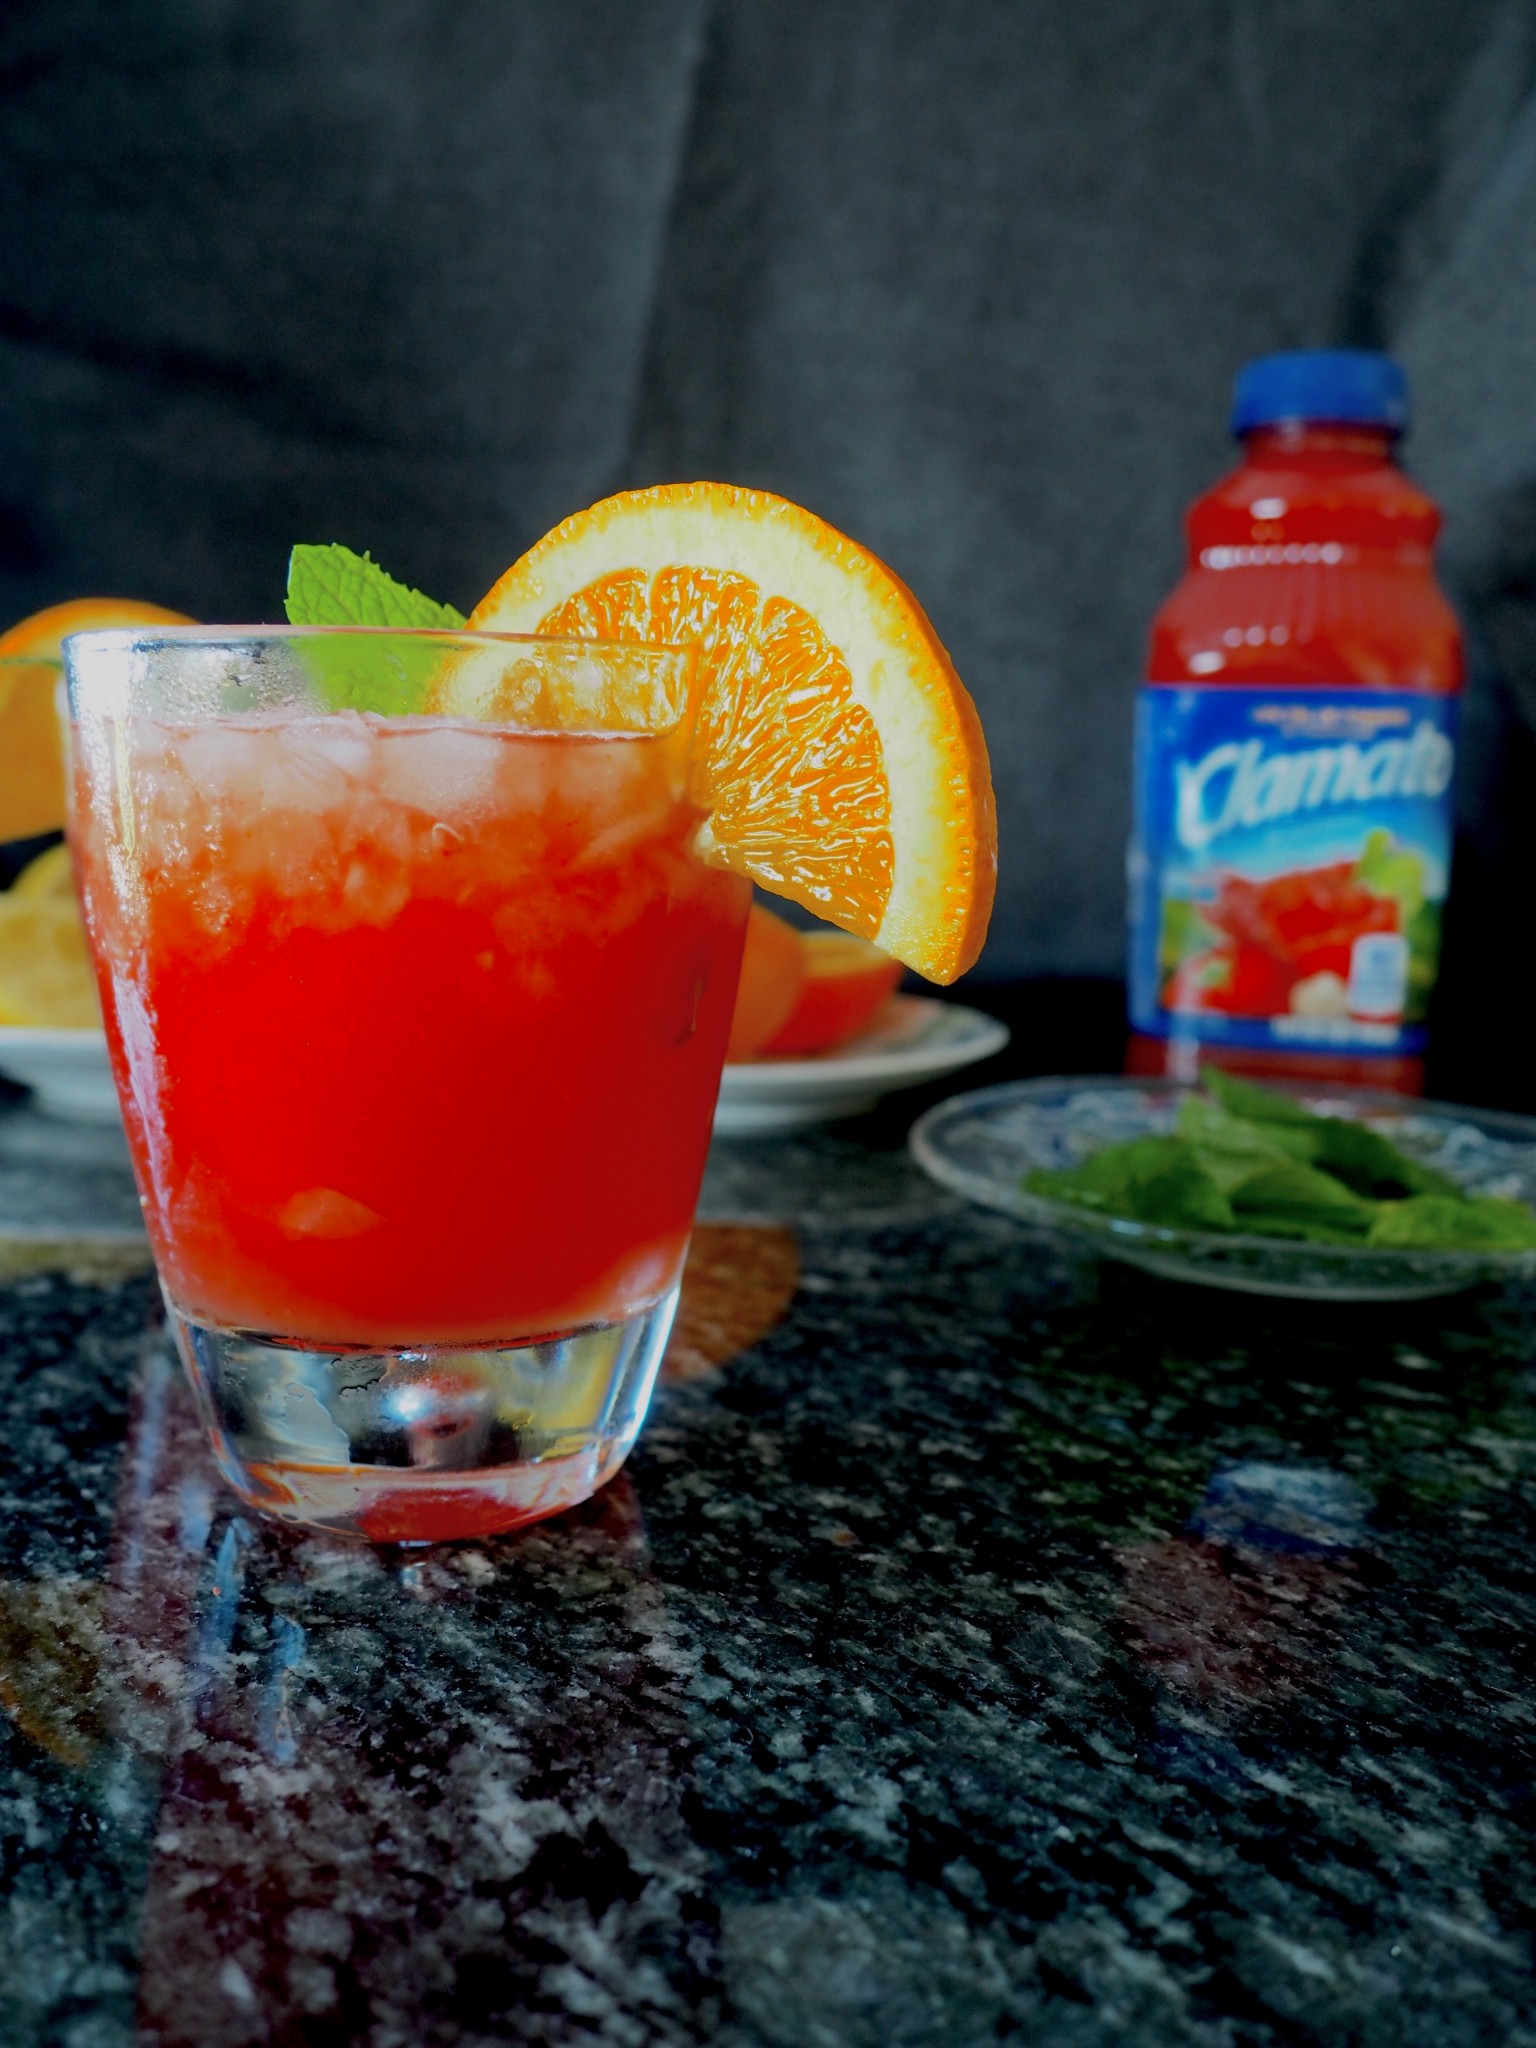 Clamato Holiday Refresher7